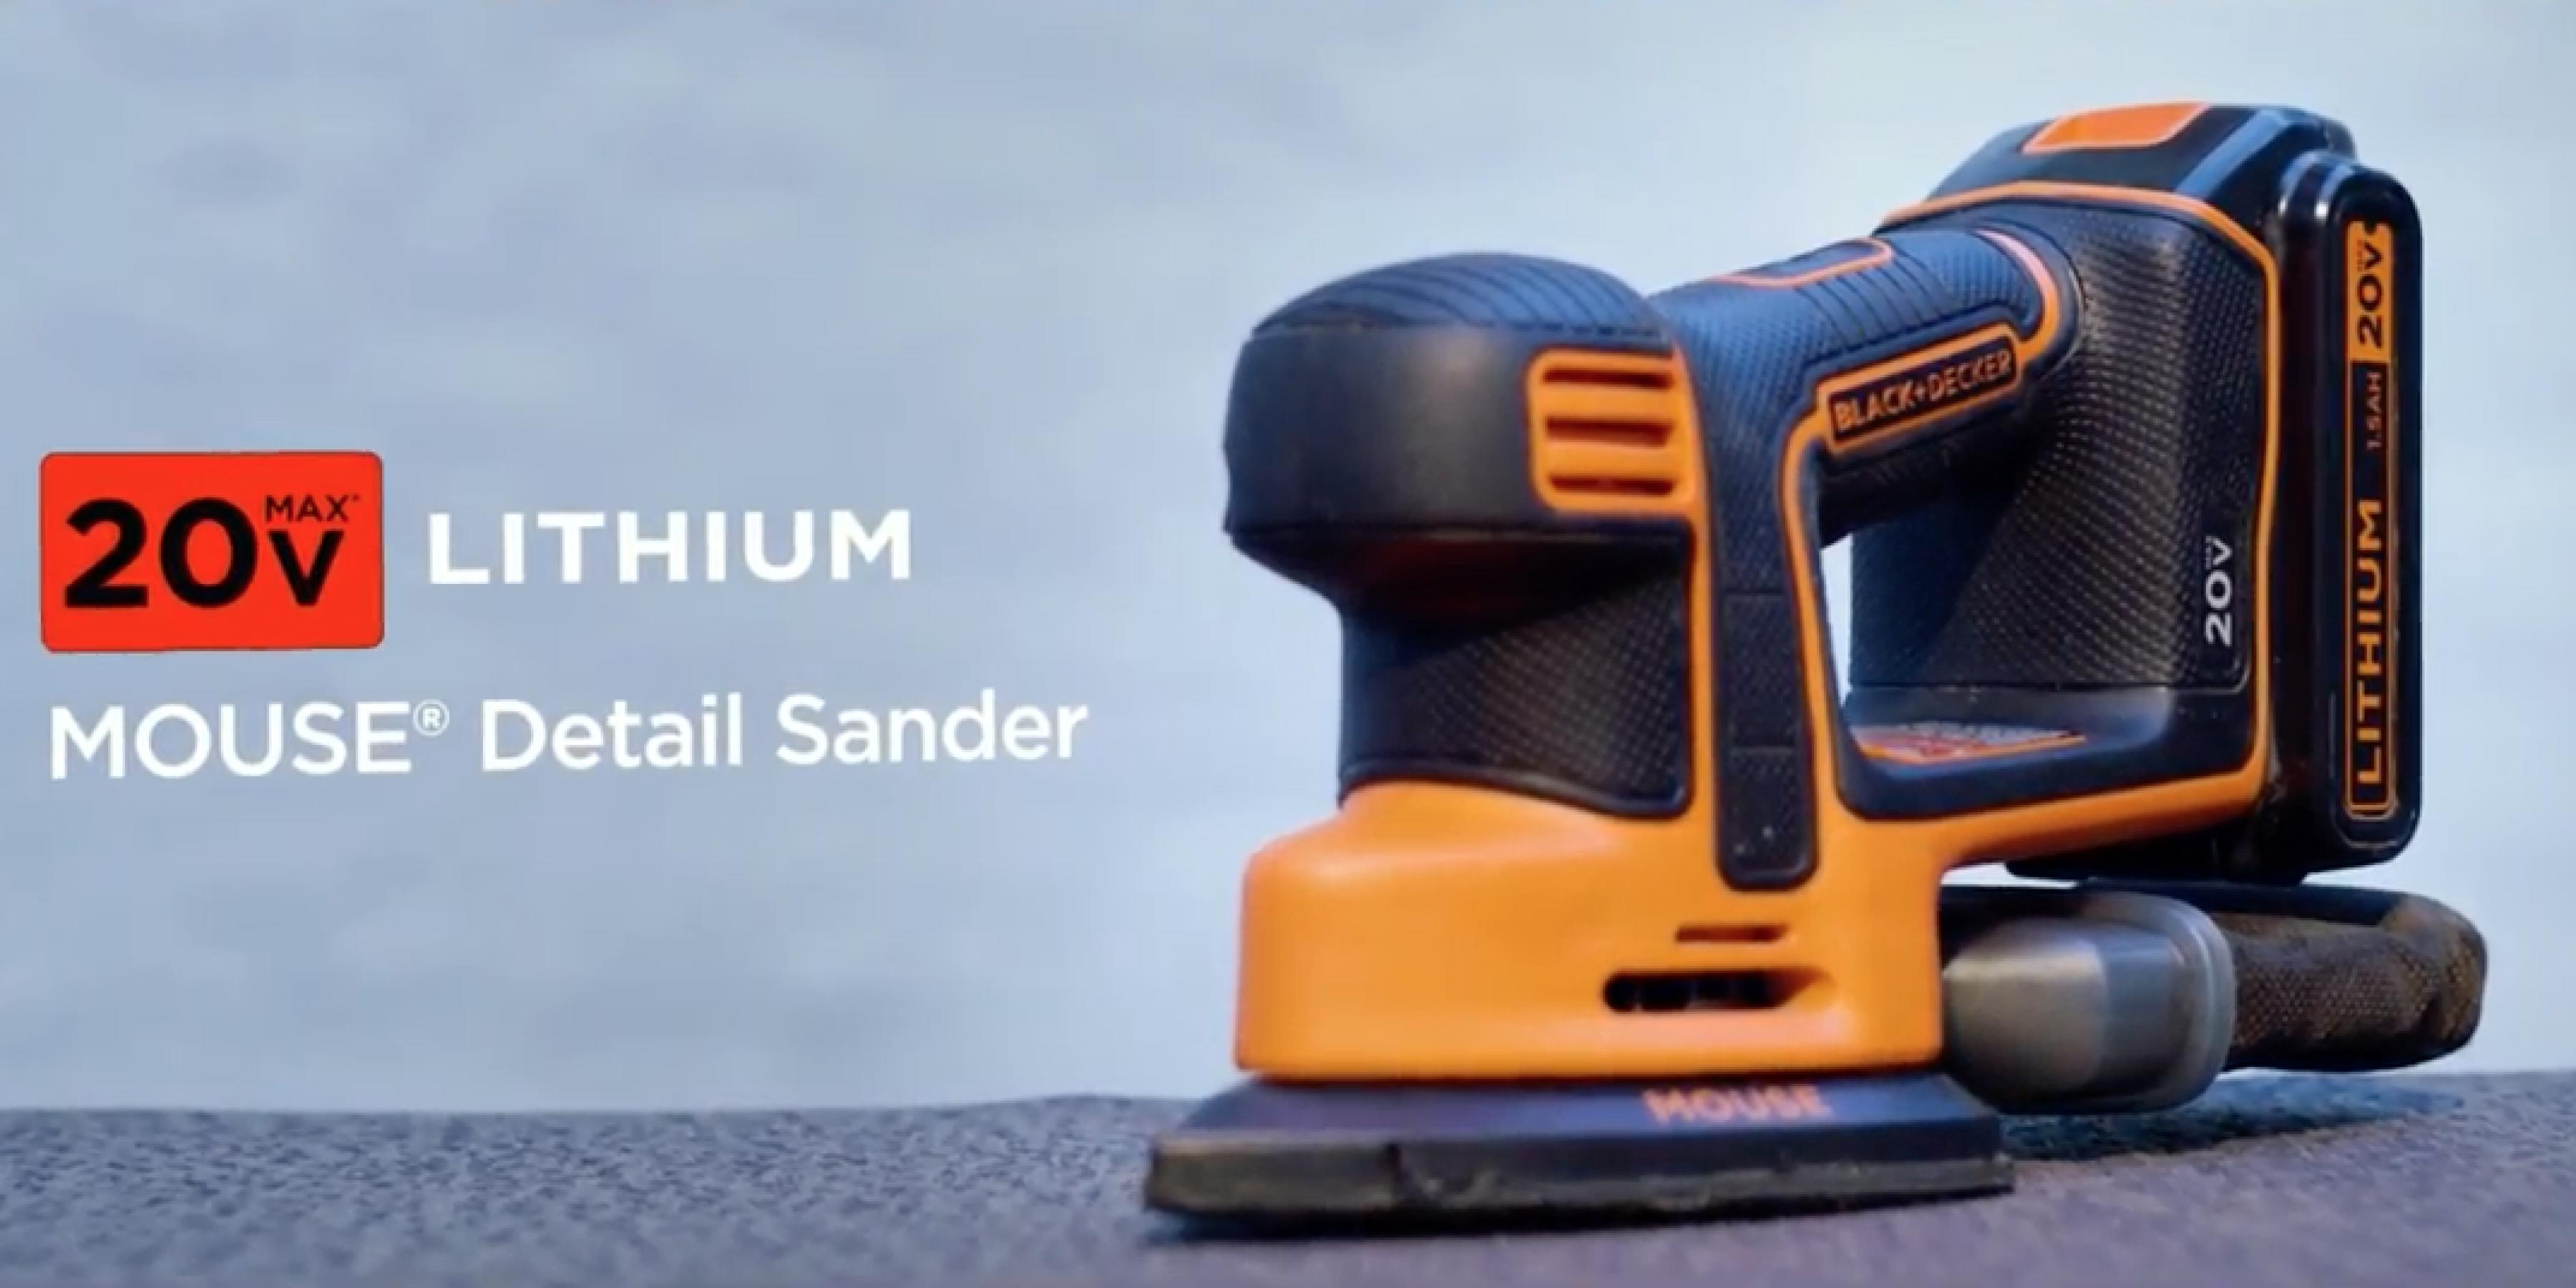 The MOUSE® Sander is now cordless